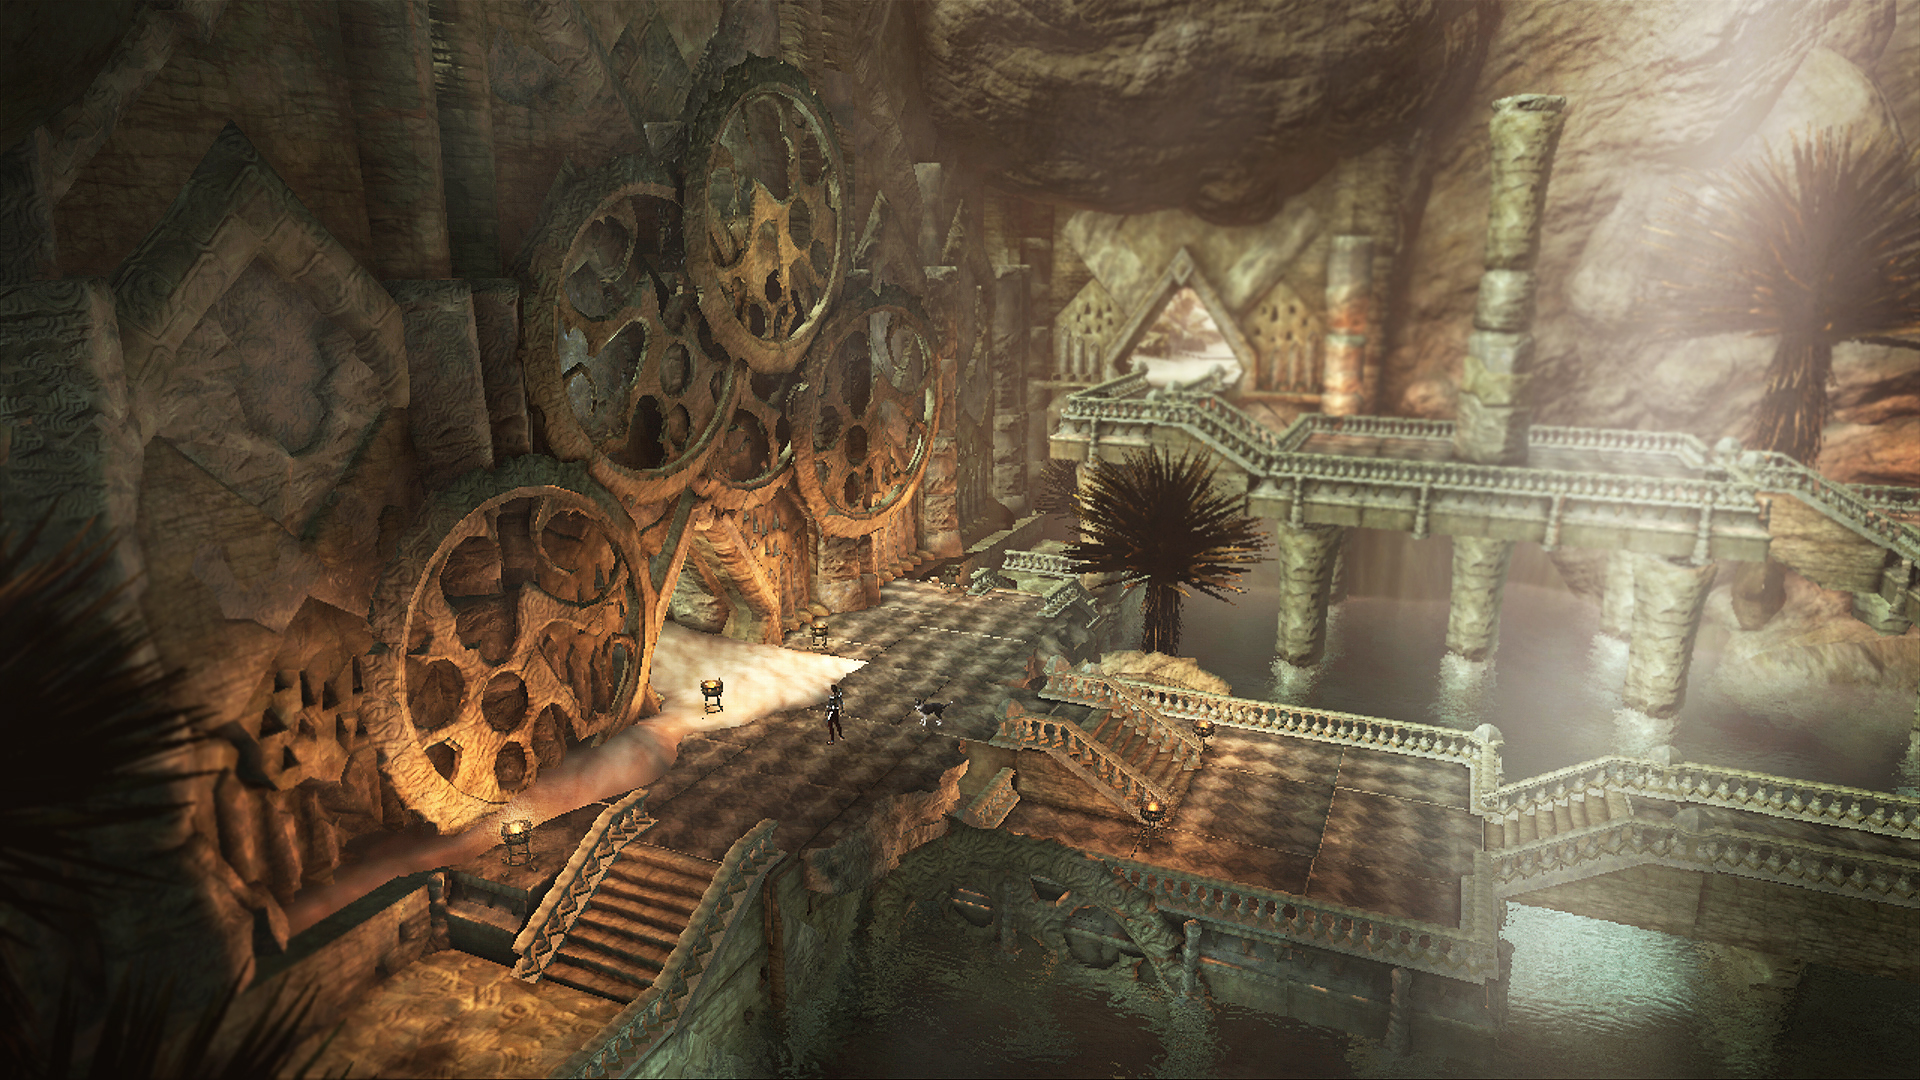 File:Fable-3-screen1.jpg